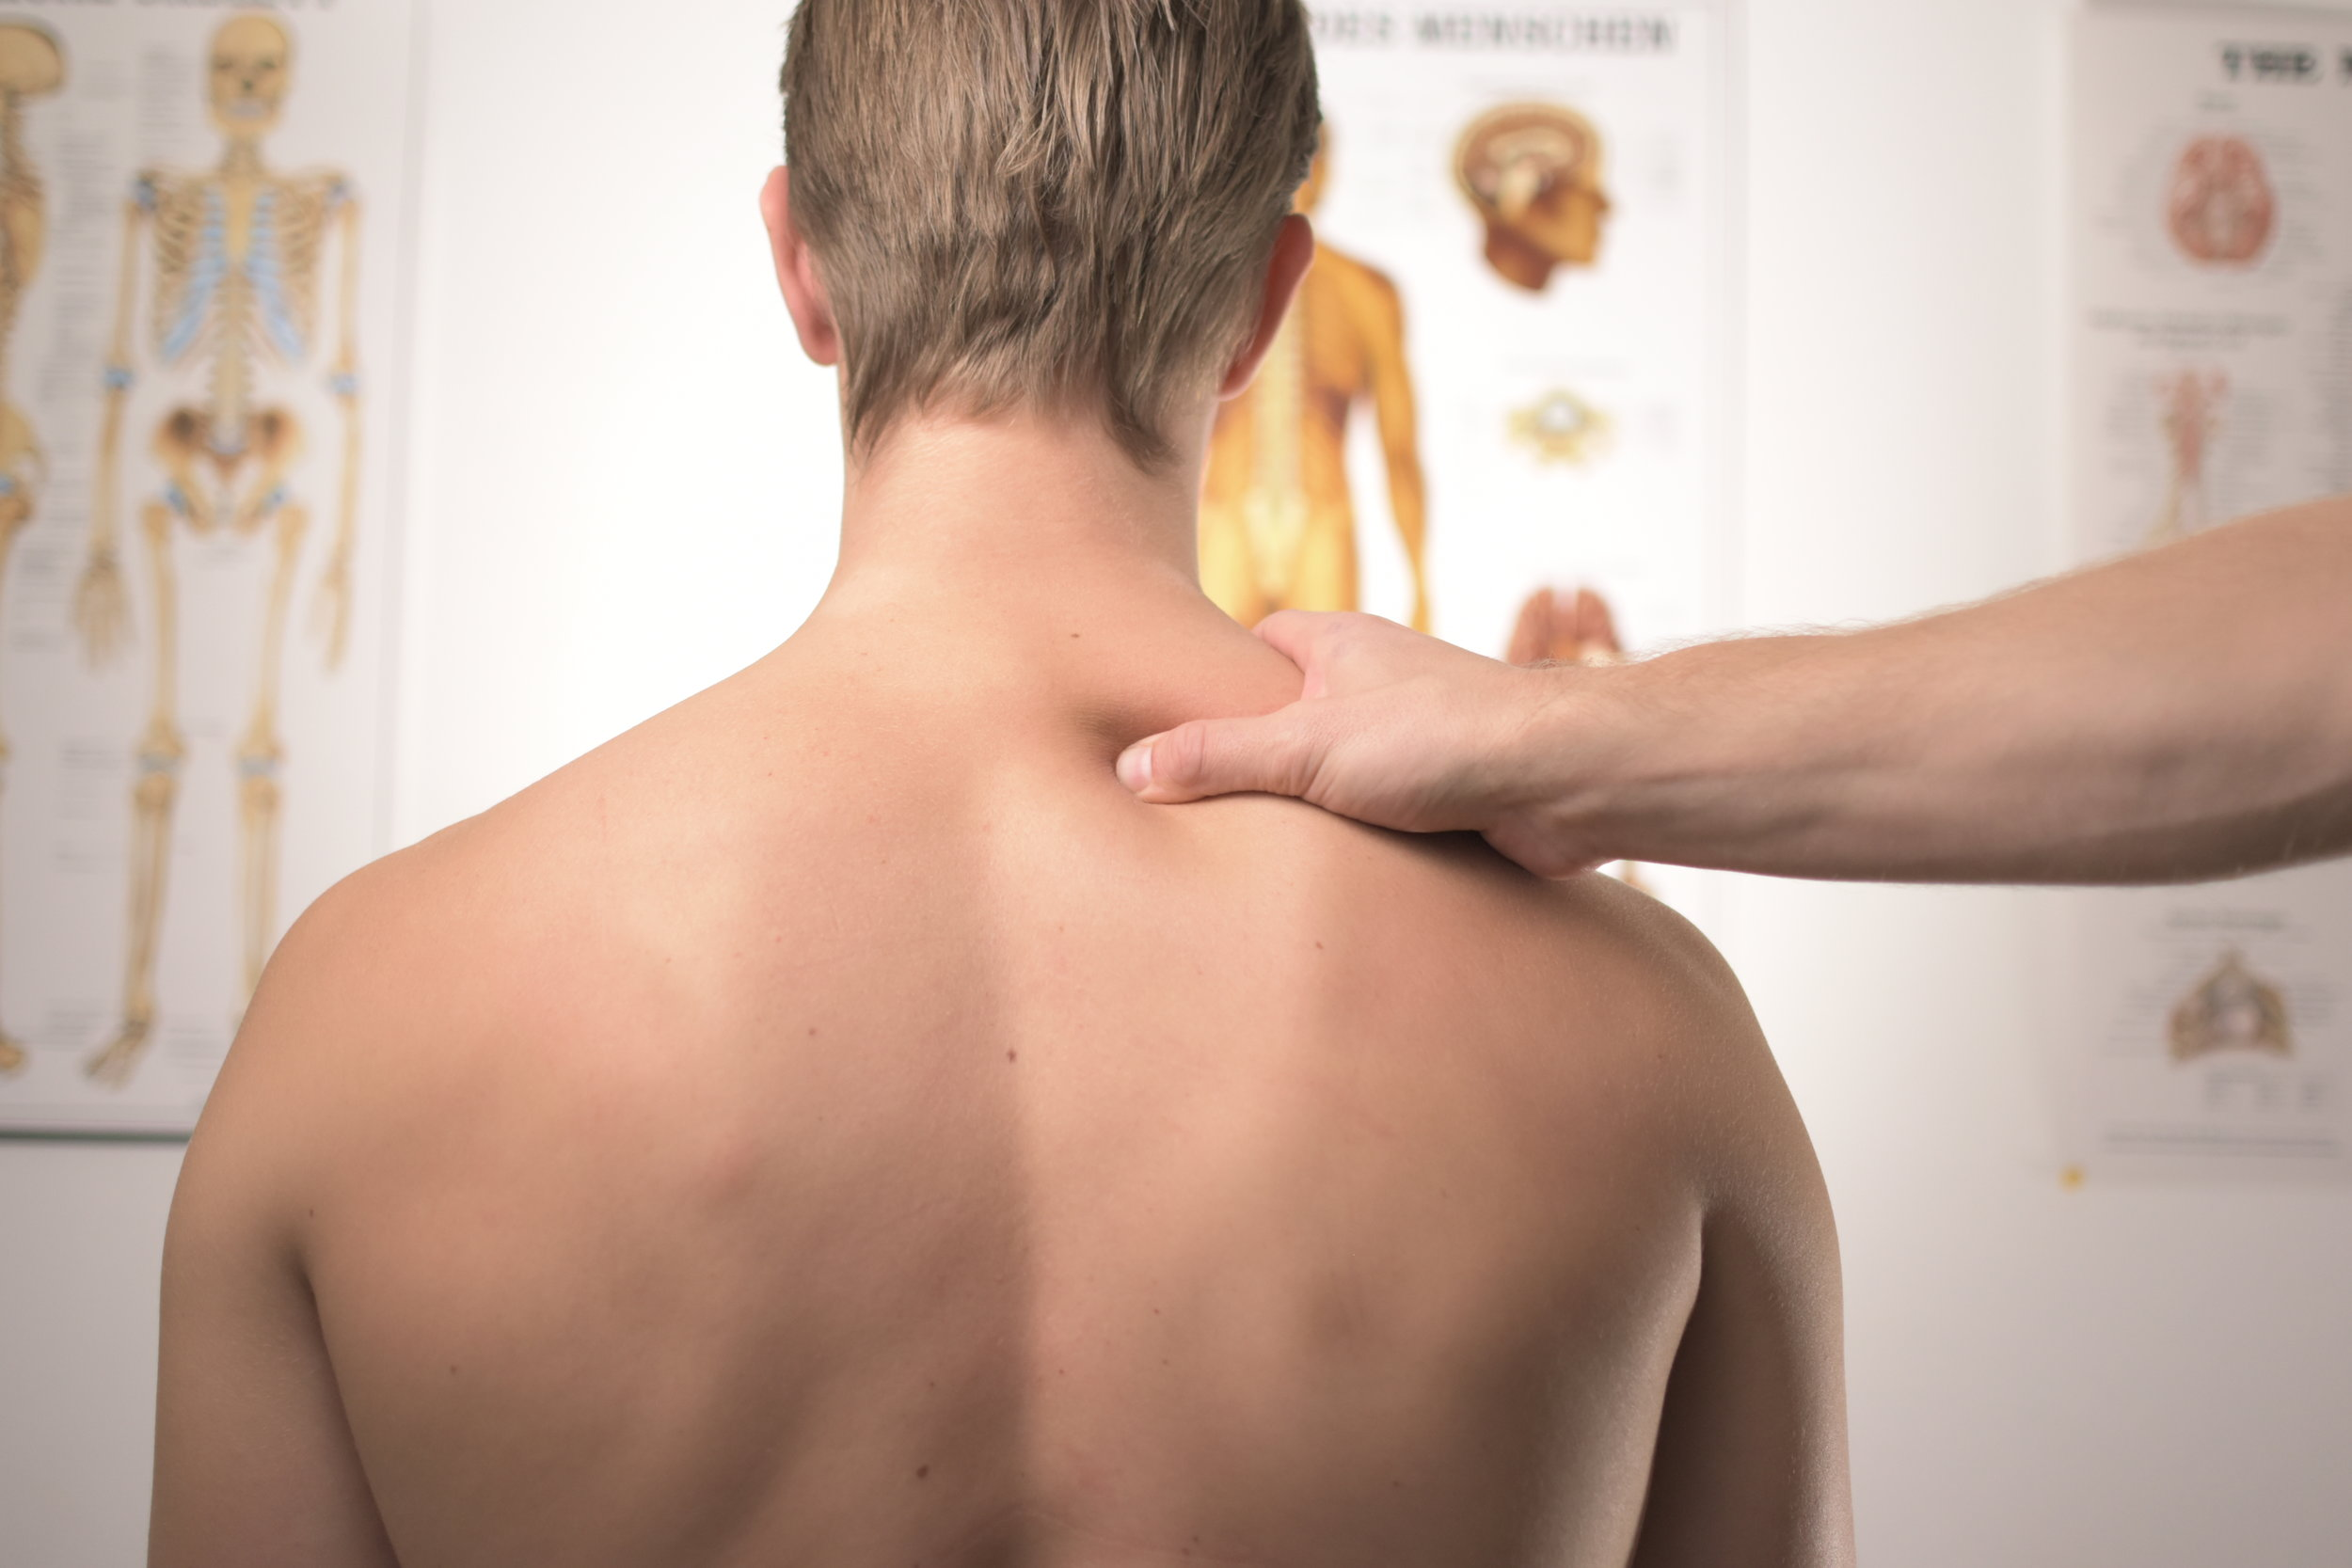 Chiropractic Feels So Good! - Until it doesn't.